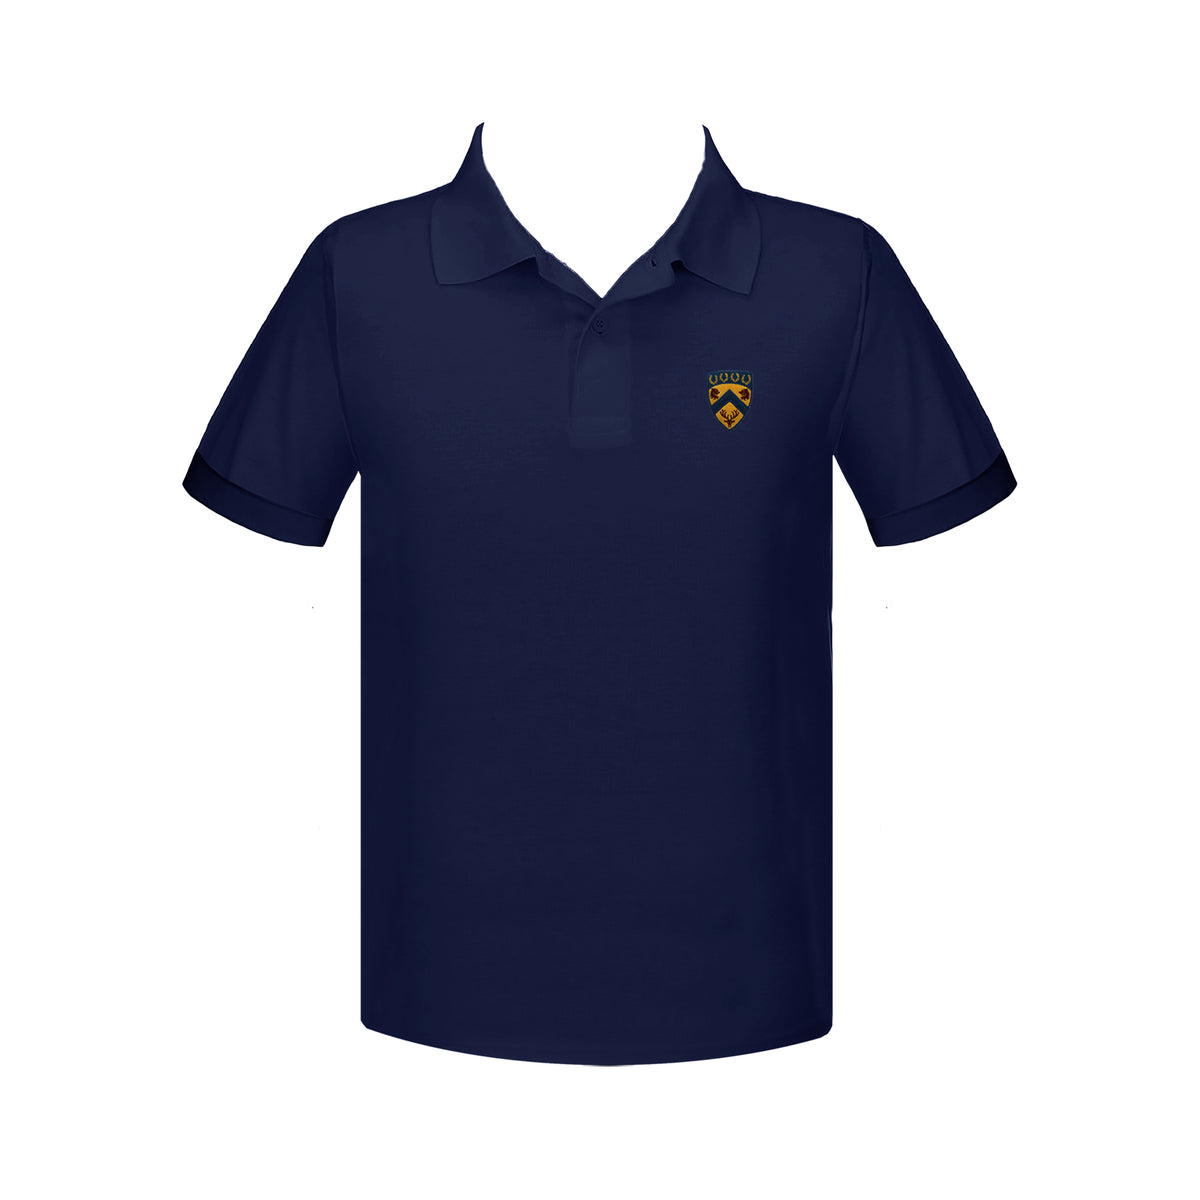 COLLINGWOOD NAVY GOLF SHIRT, UNISEX, SHORT SLEEVE, YOUTH